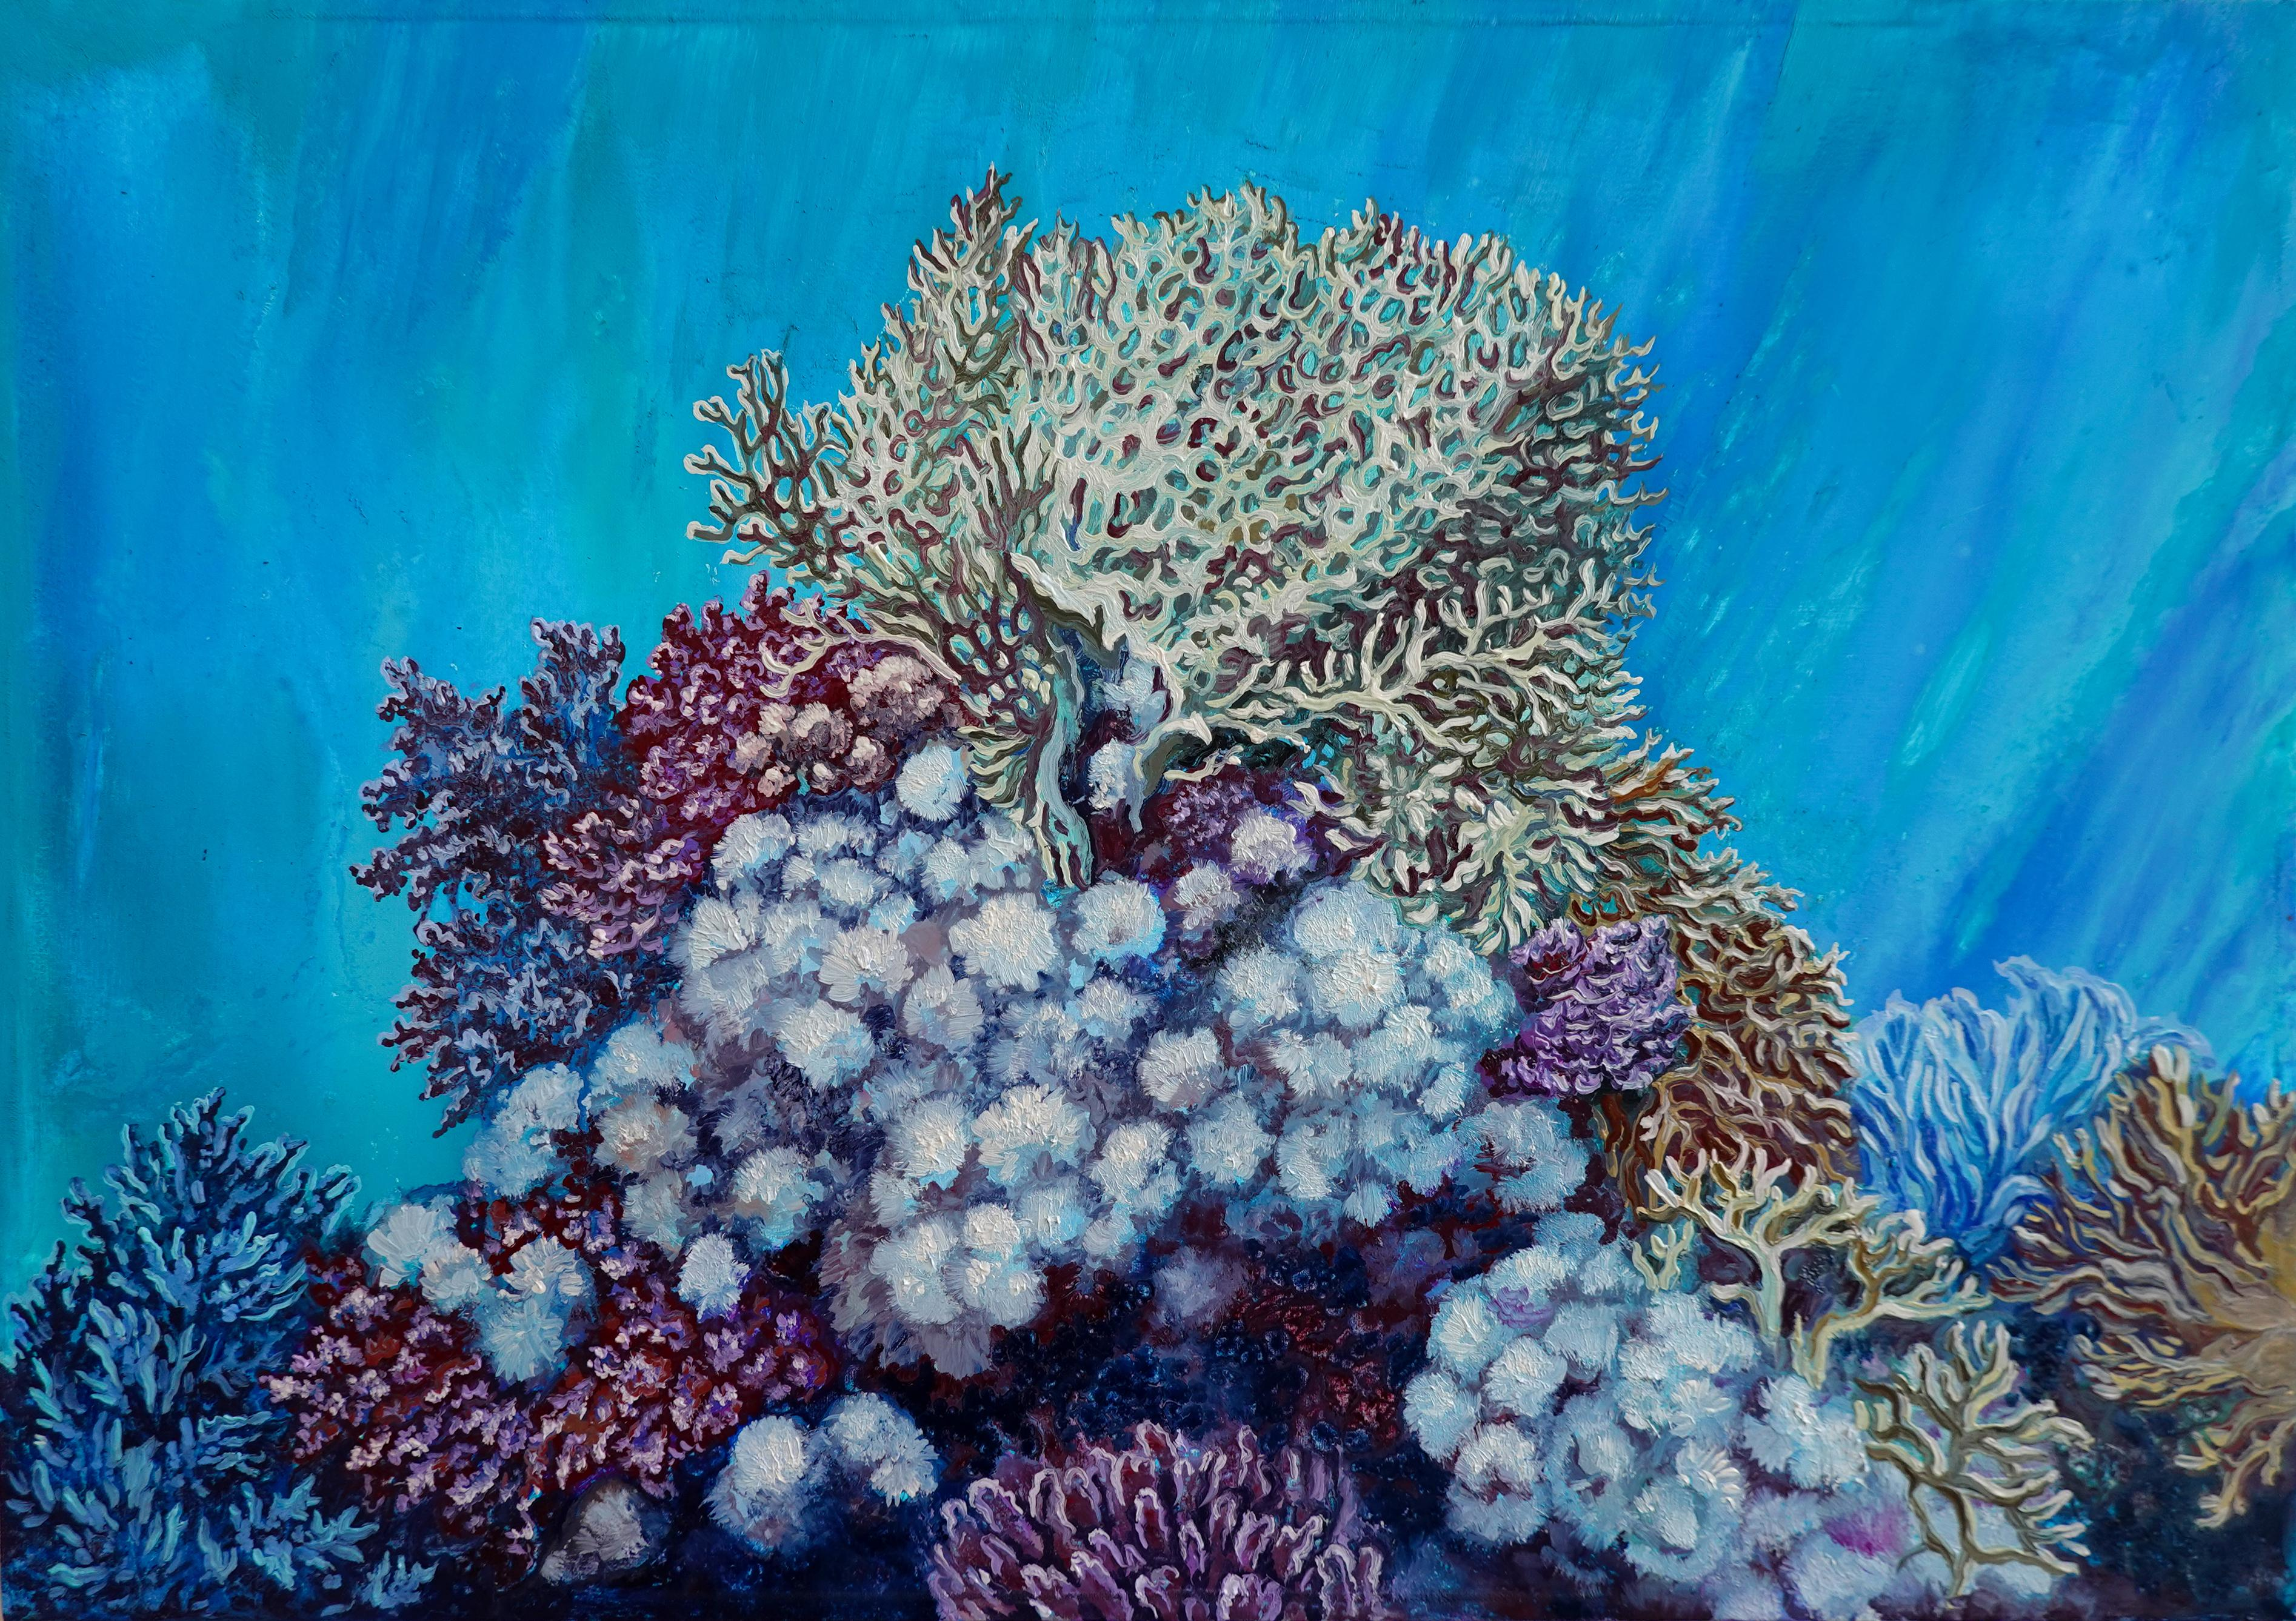 December Morning, Coral Reef Painting, Oil on Canvas by Nikolina Kovalenko